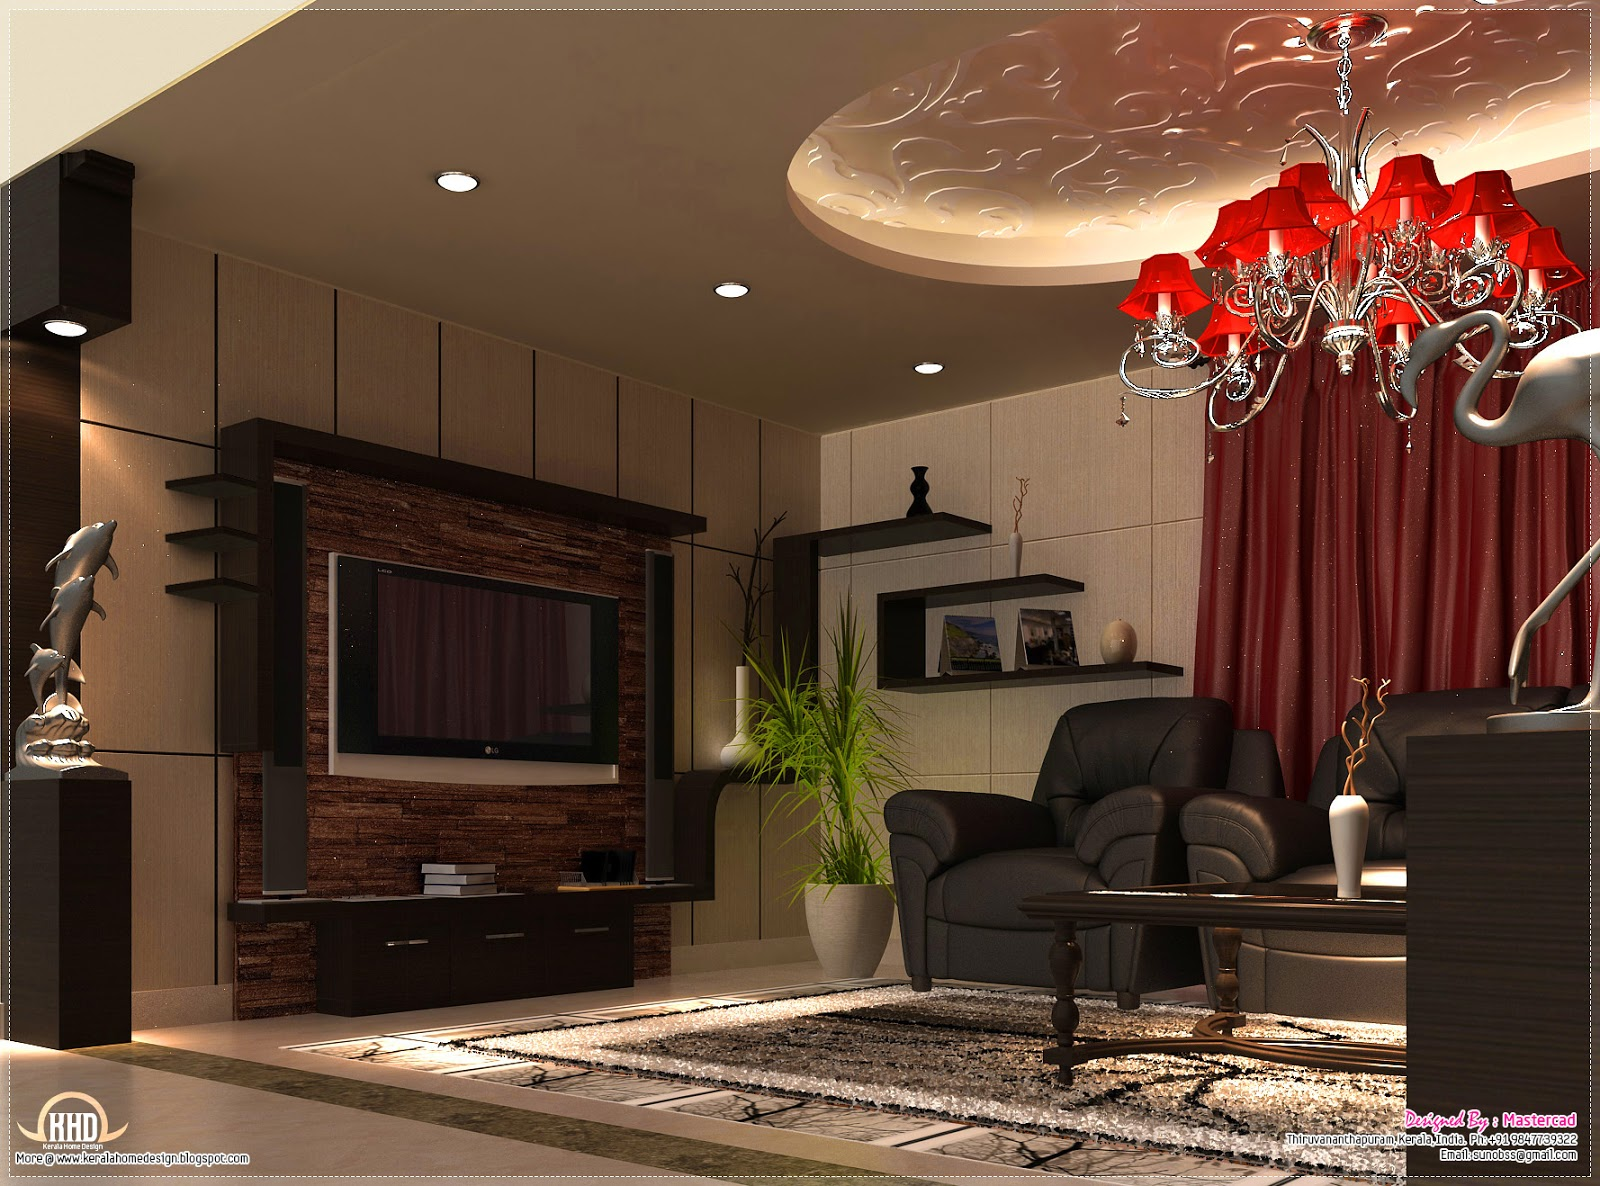 Interior design ideas kerala home design and floor plans - Interior living room design ideas ...